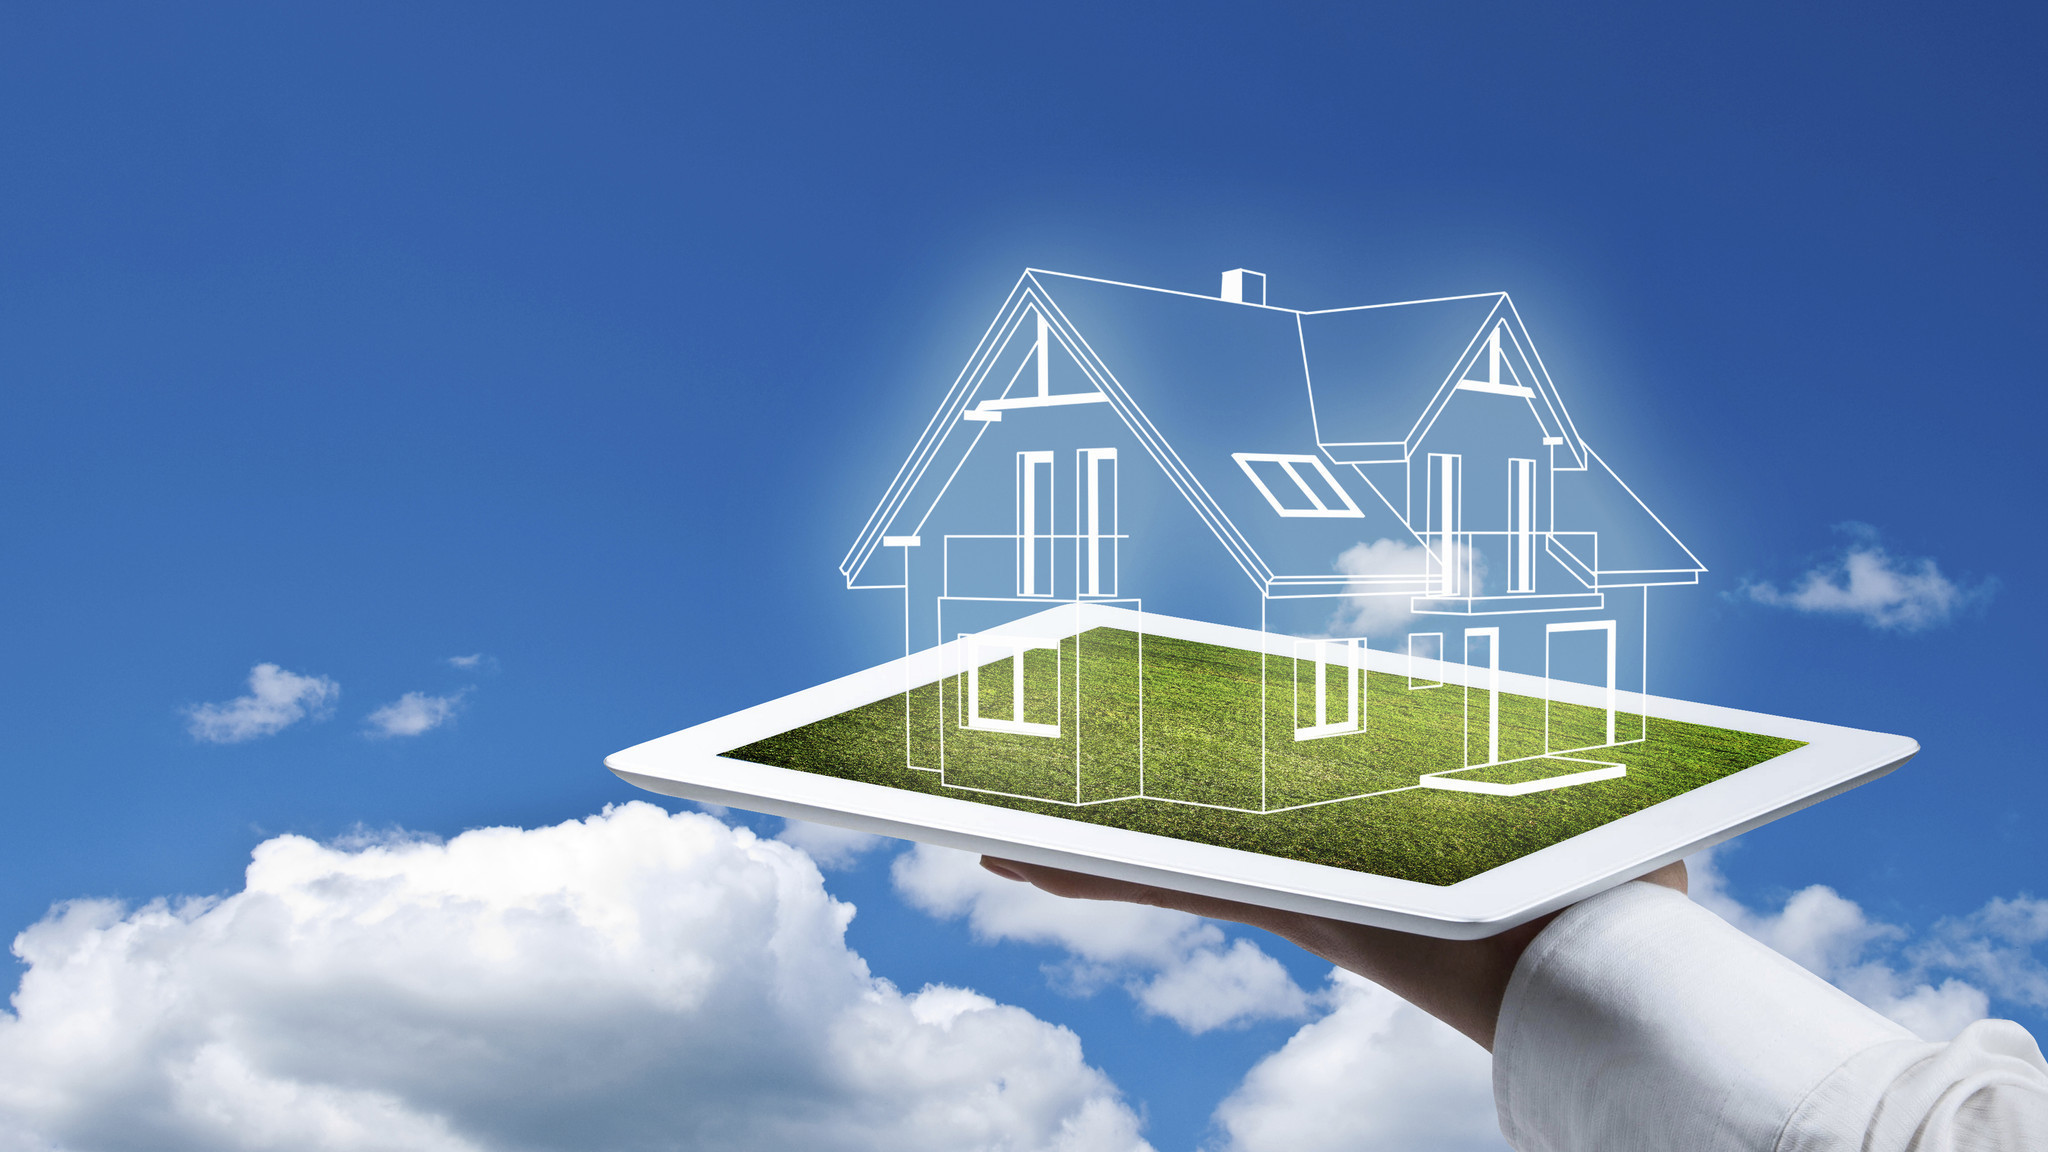 Technology in real estate, Real estate technology, India real estate news, Indian property market, Track2Realty